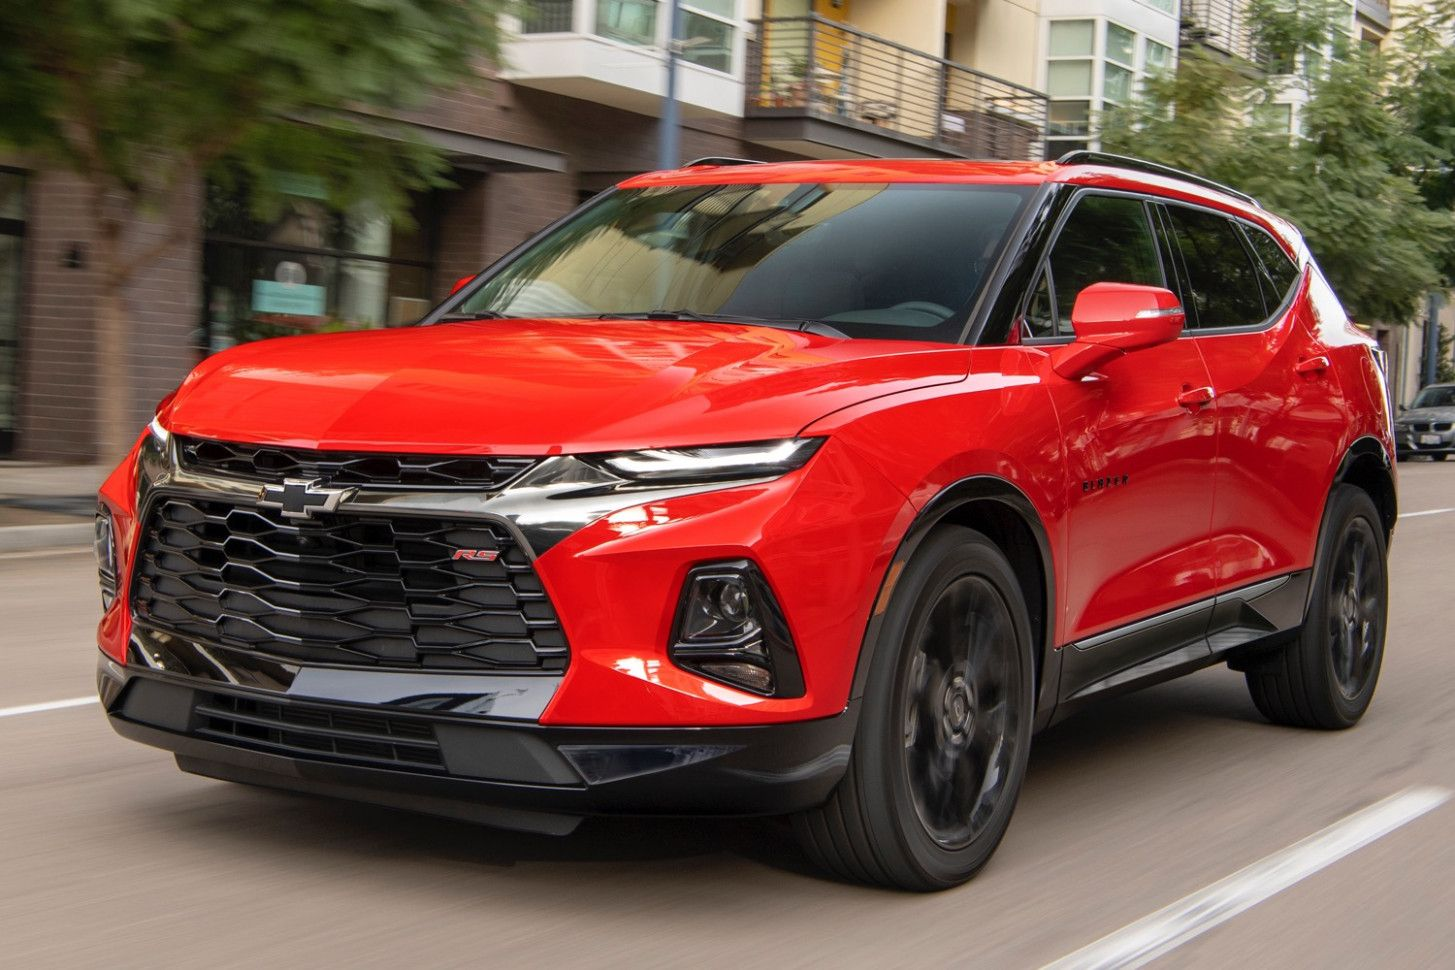 2020 Gmc Blazer In 2020 Chevrolet Blazer Chevy Trailblazer